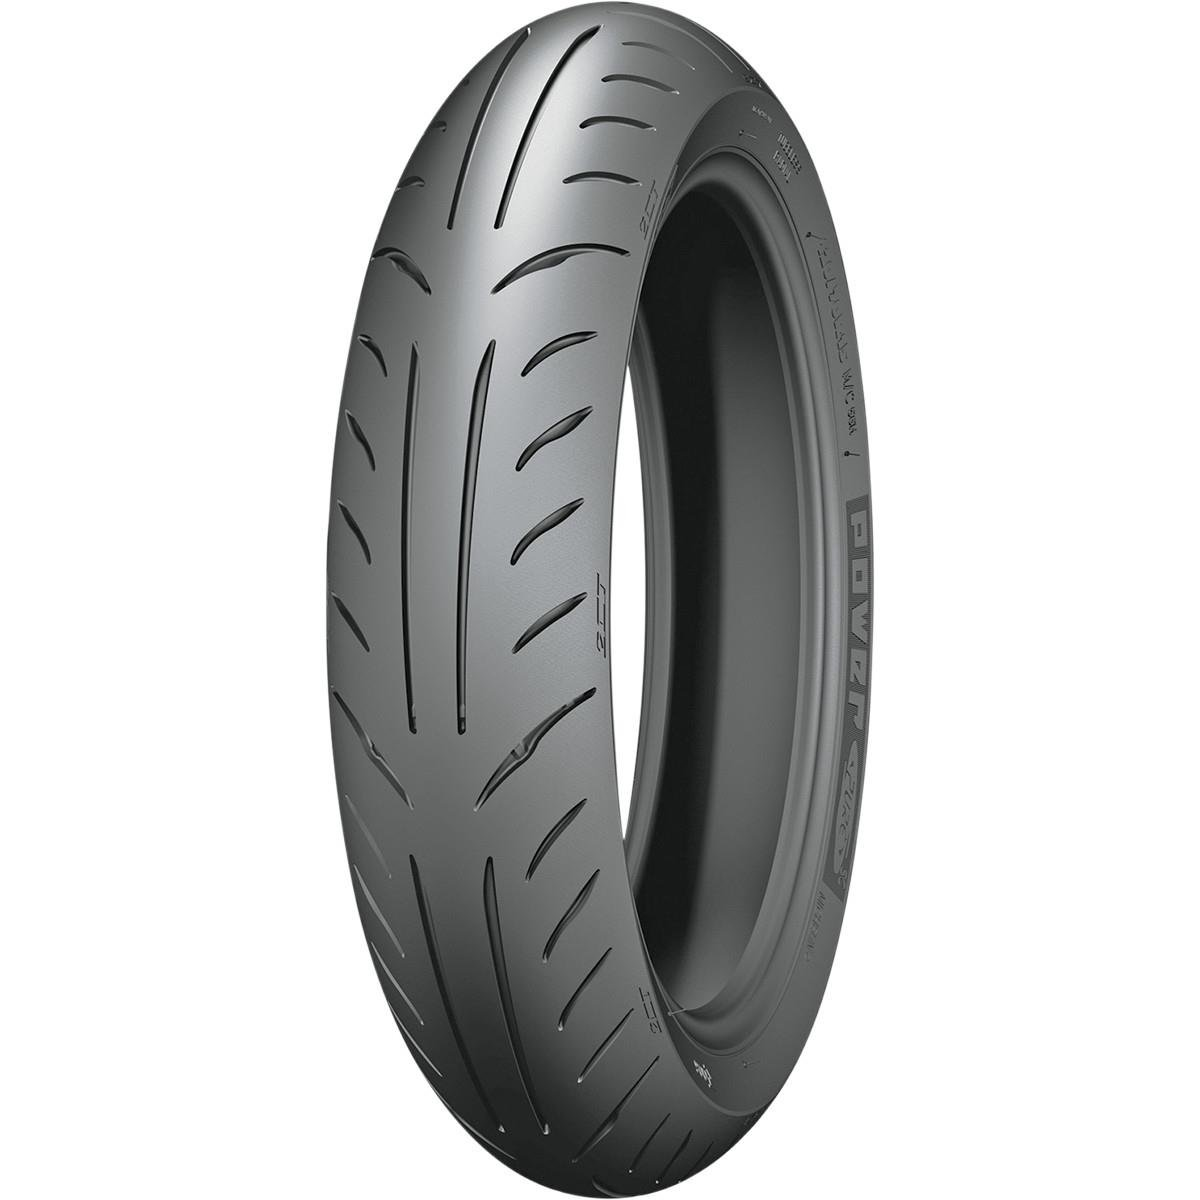 MICHELIN Power Pure SC Front Motorcycle Tire 120/70-13